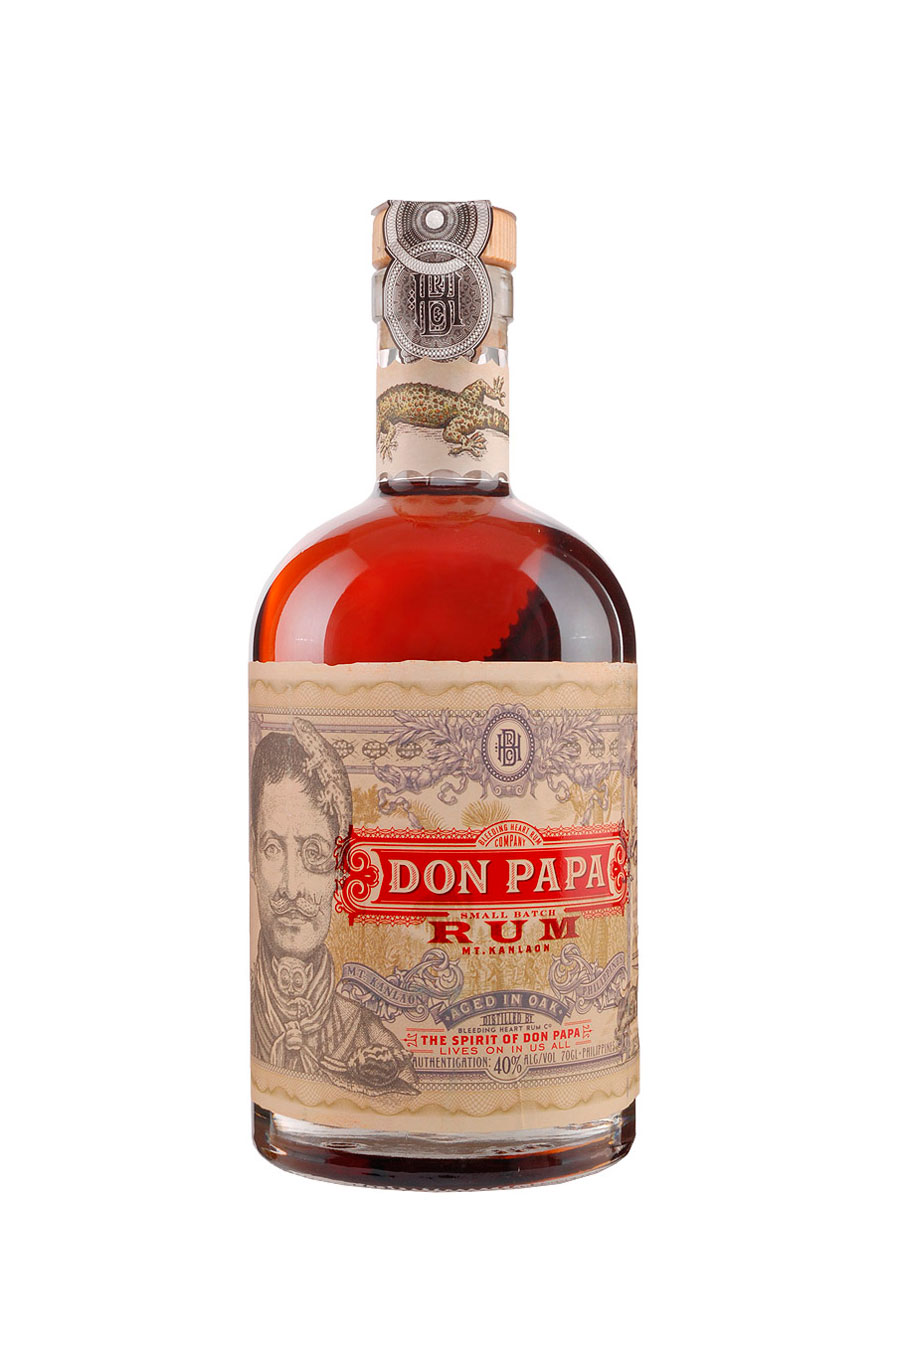 BOTELLA DON PAPA-32,90-€. Ron gourmet Don Papa (32,90 €)